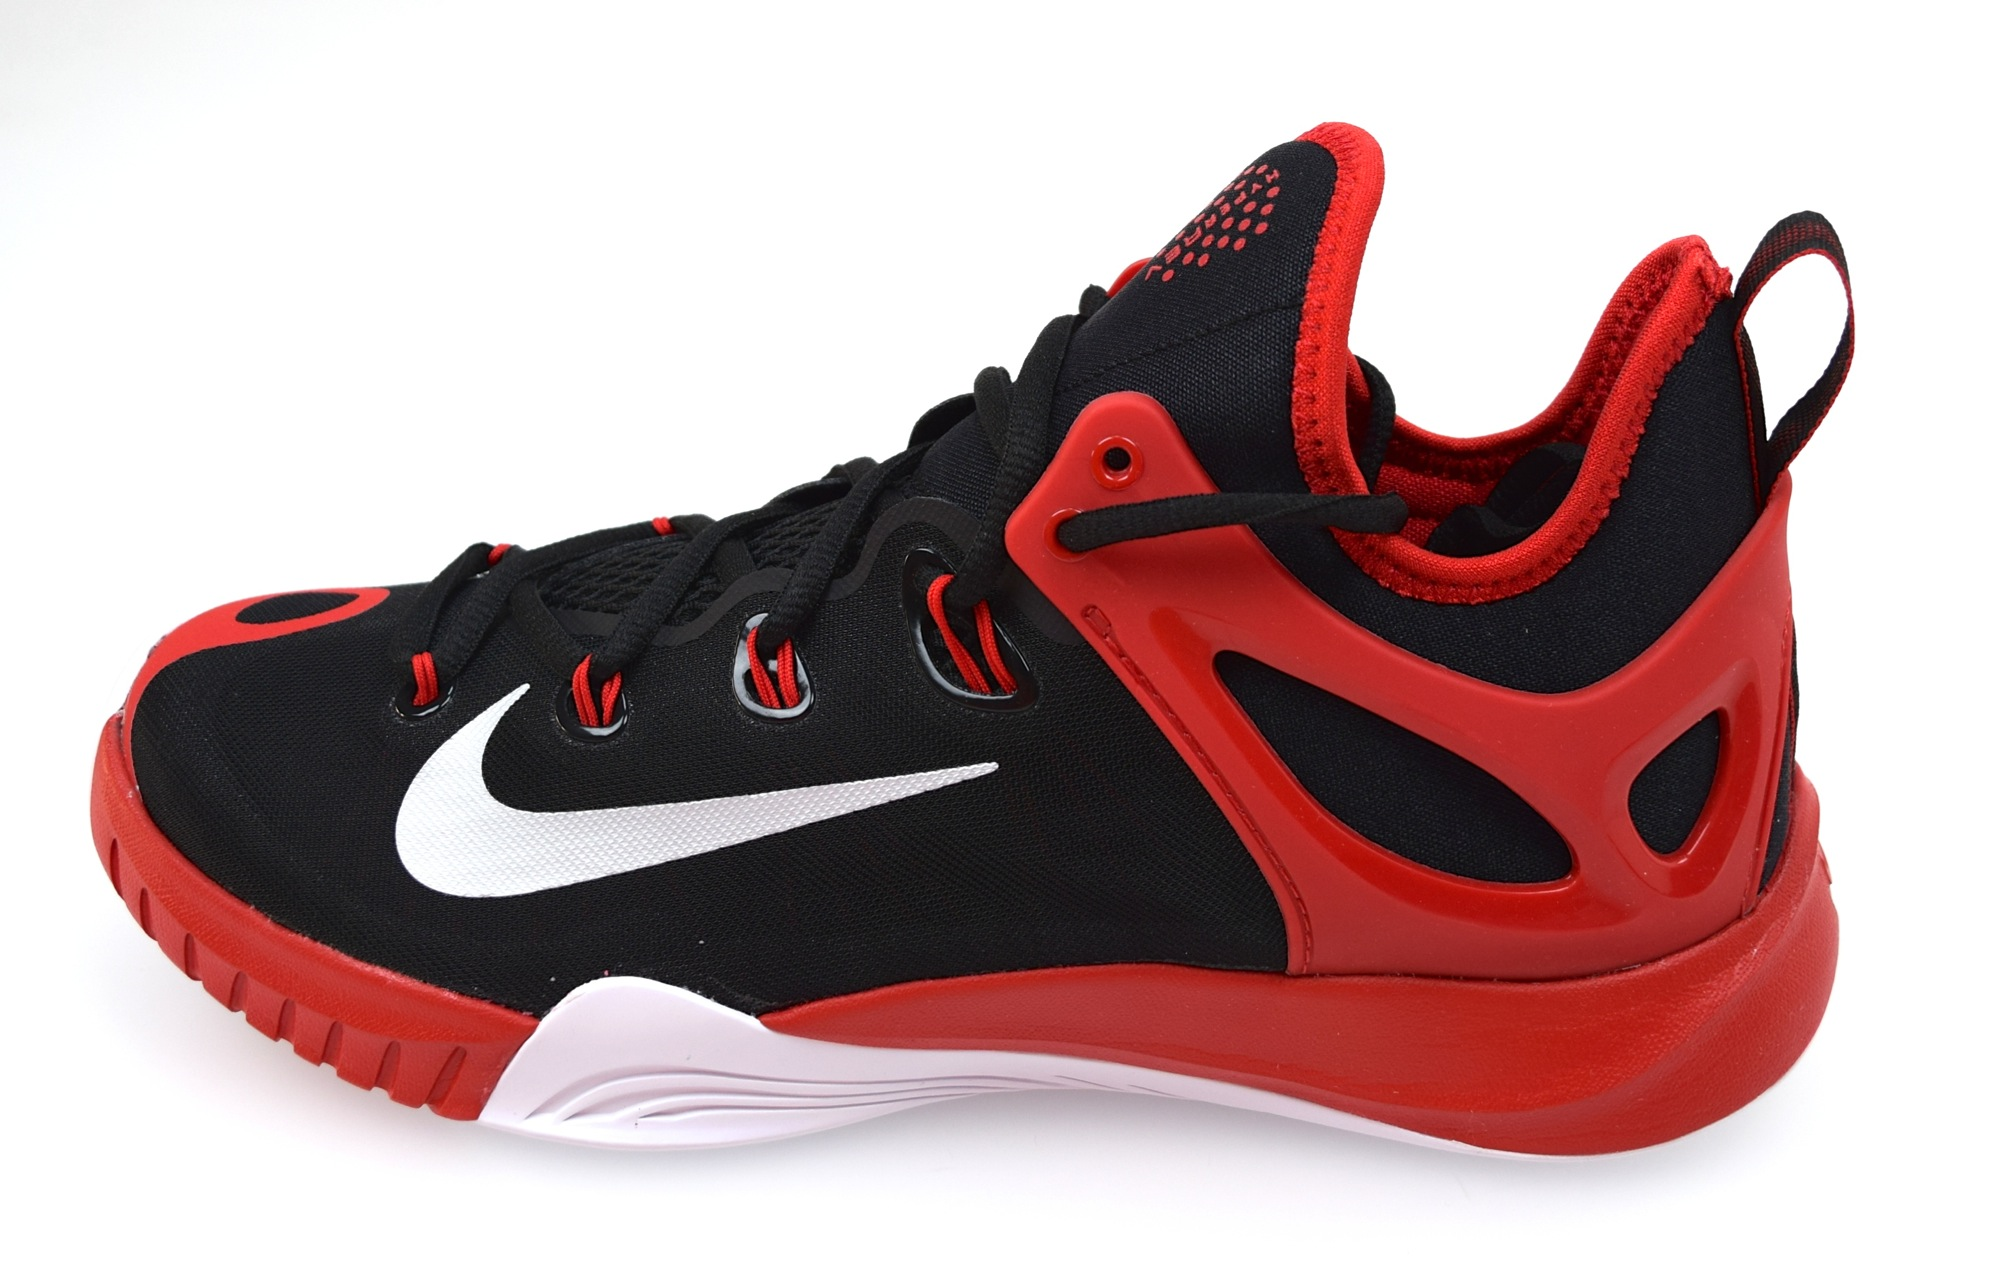 check out c94f4 61e93 NIKE MAN SPORTS SNEAKER BASKET SHOES CODE NIKE ZOOM HYPERREV 2015 705370